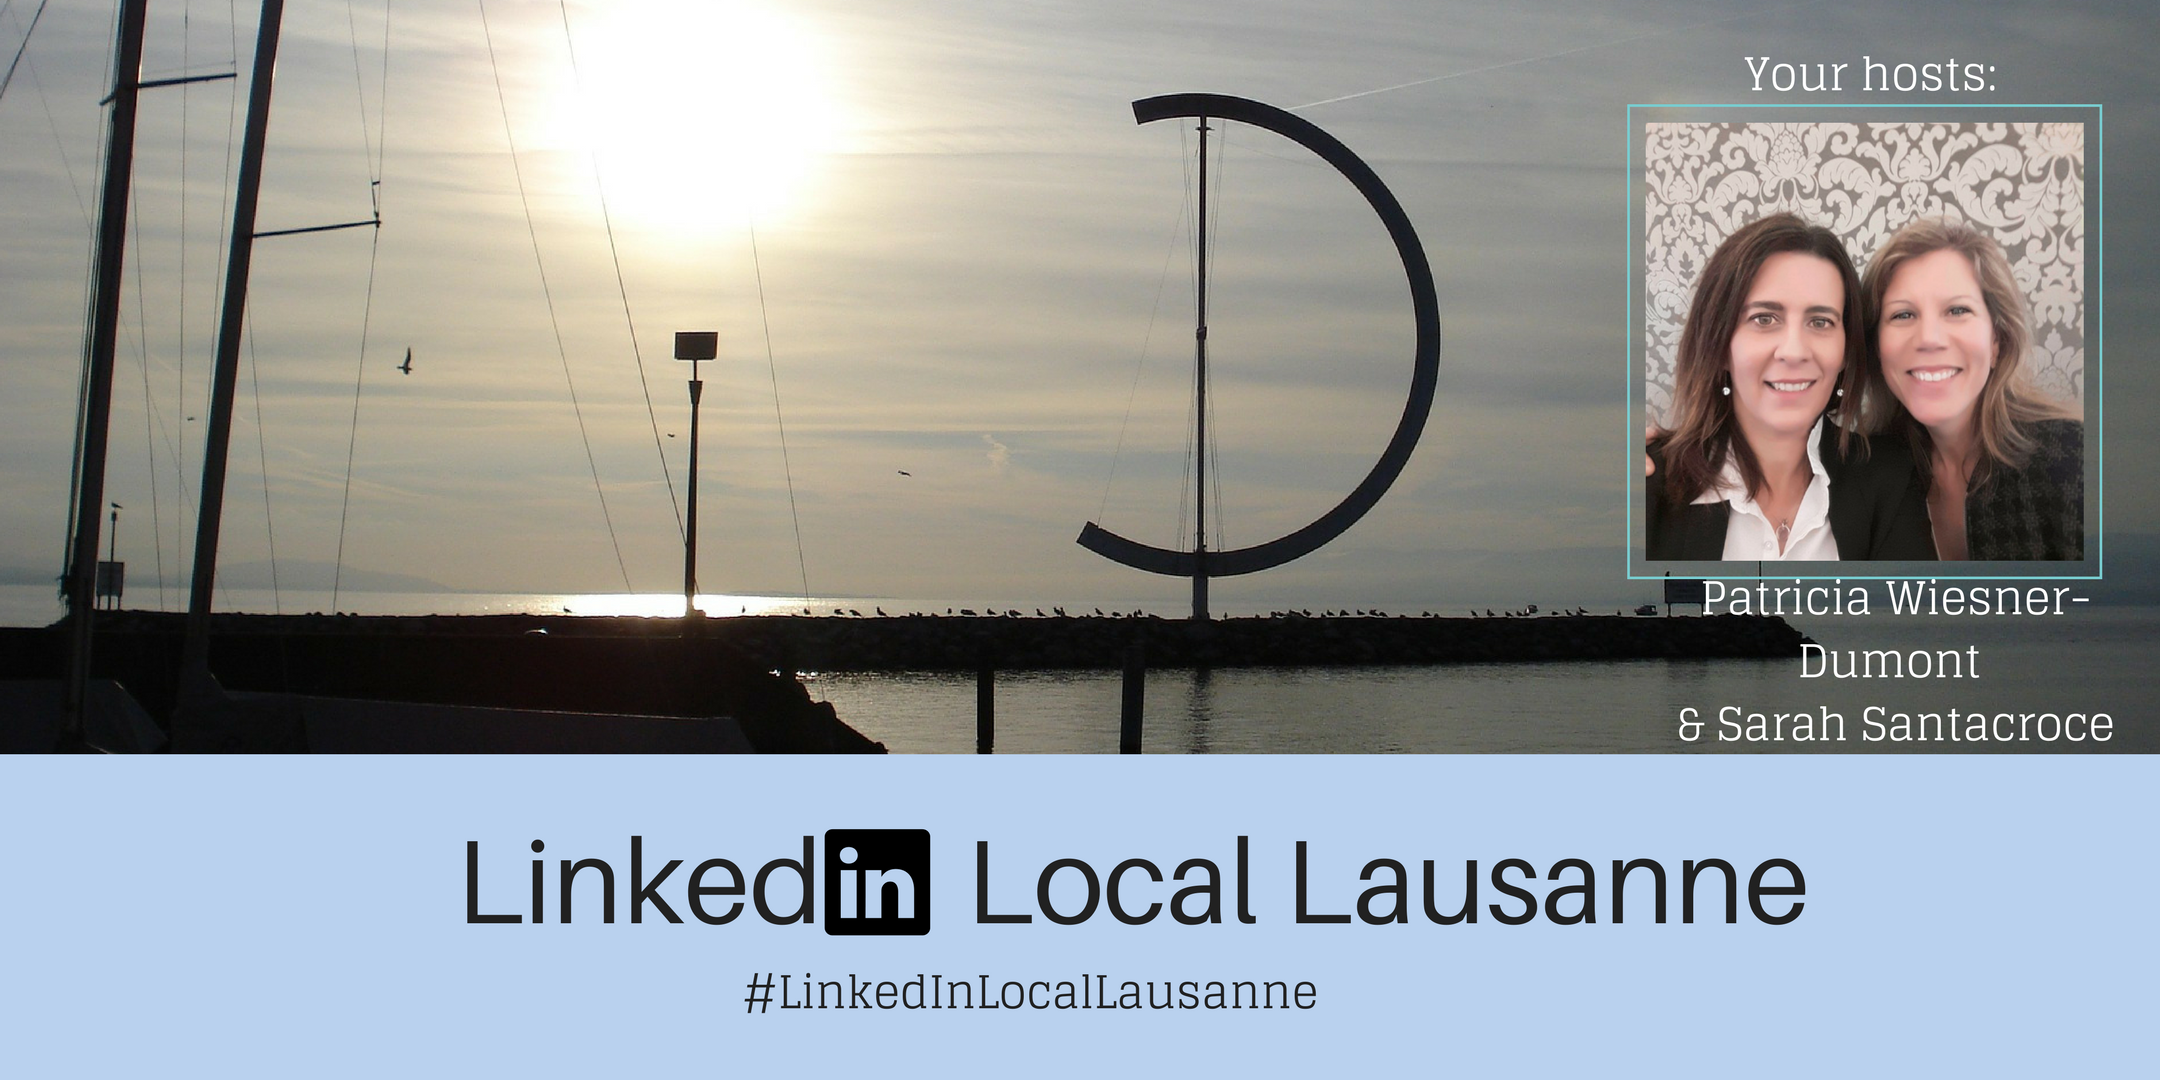 LinkedInLocalLausanne April 25th 2018